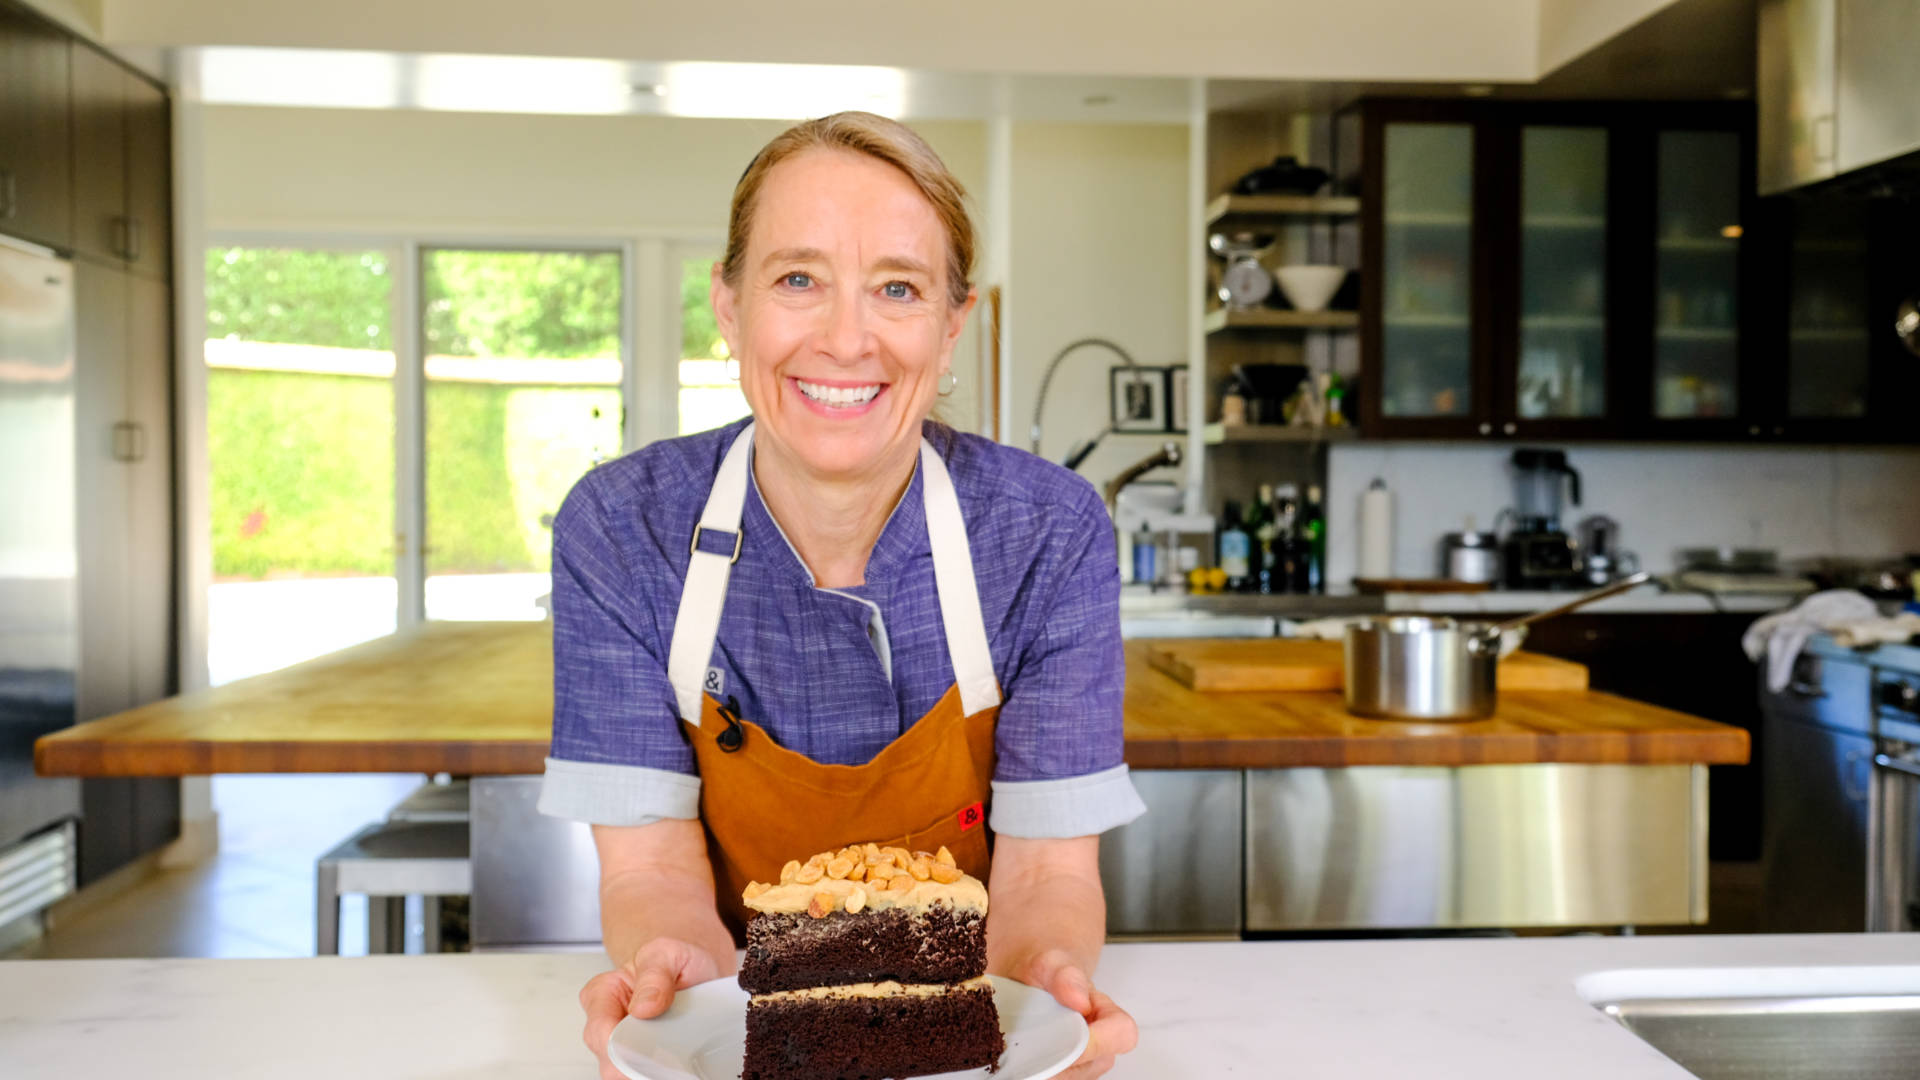 Chef Emily Luchetti with a slice of her classic chocolate cake topped with peanut butter frosting and honeyed peanuts.